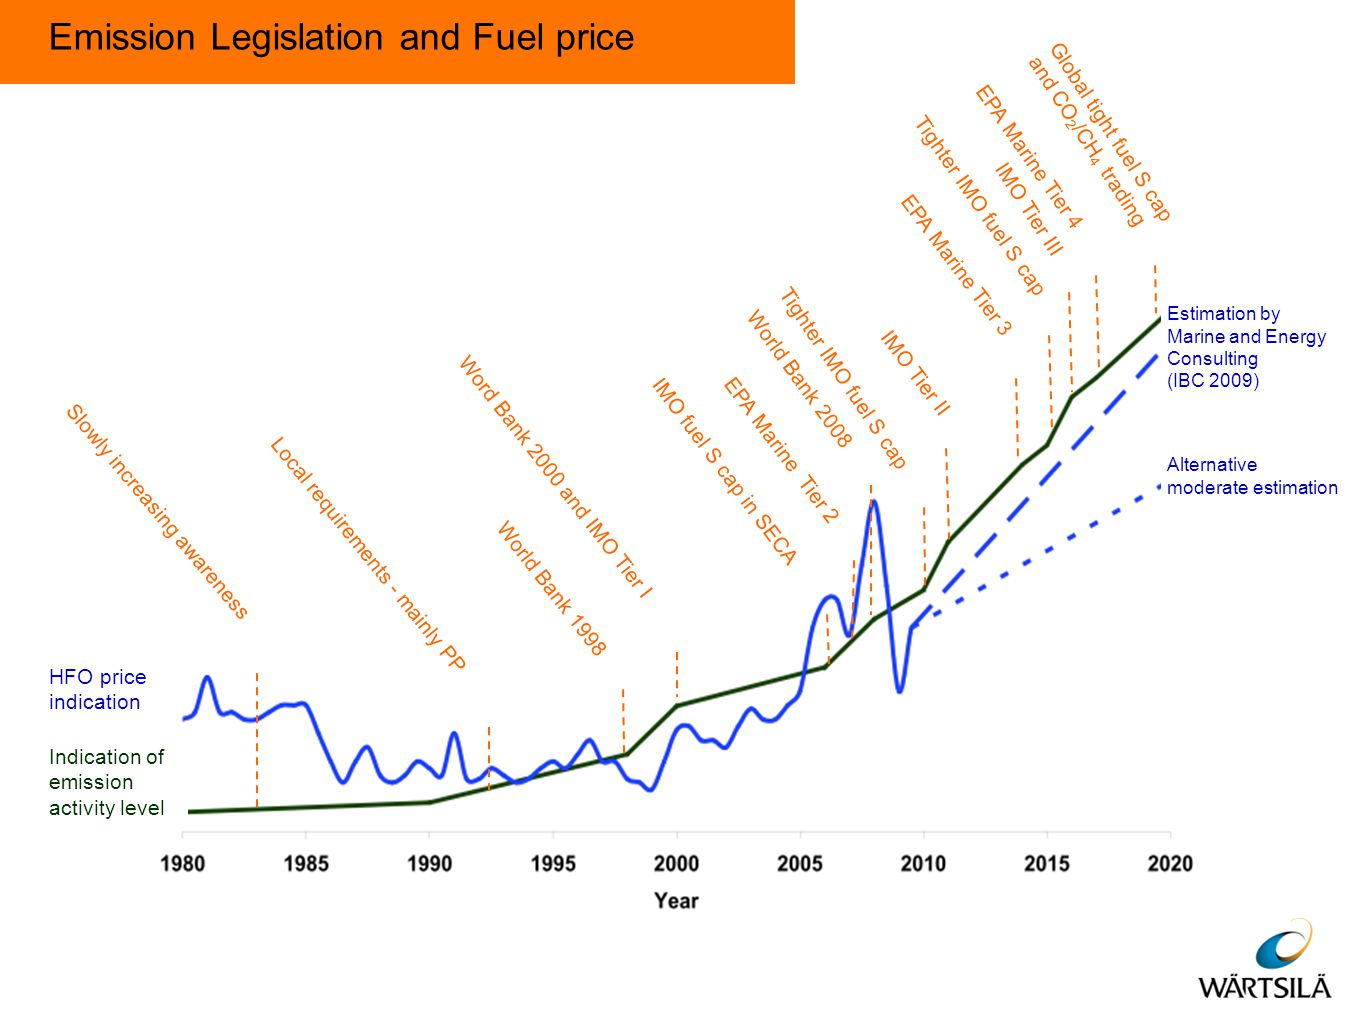 Emission Legislation and Fuel price Slowly increasing awareness Local requirements - mainly PP World Bank 1998 Word Bank 2000 and IMO Tier I IMO fuel S cap in SECA World Bank 2008 Tighter IMO fuel S cap IMO Tier II Tighter IMO fuel S cap IMO Tier III Global tight fuel S cap and CO 2 /CH 4 trading EPA Marine Tier 3 EPA Marine Tier 4 EPA Marine Tier 2 HFO price indication Indication of emission activity level Estimation by Marine and Energy Consulting (IBC 2009) Alternative moderate estimation